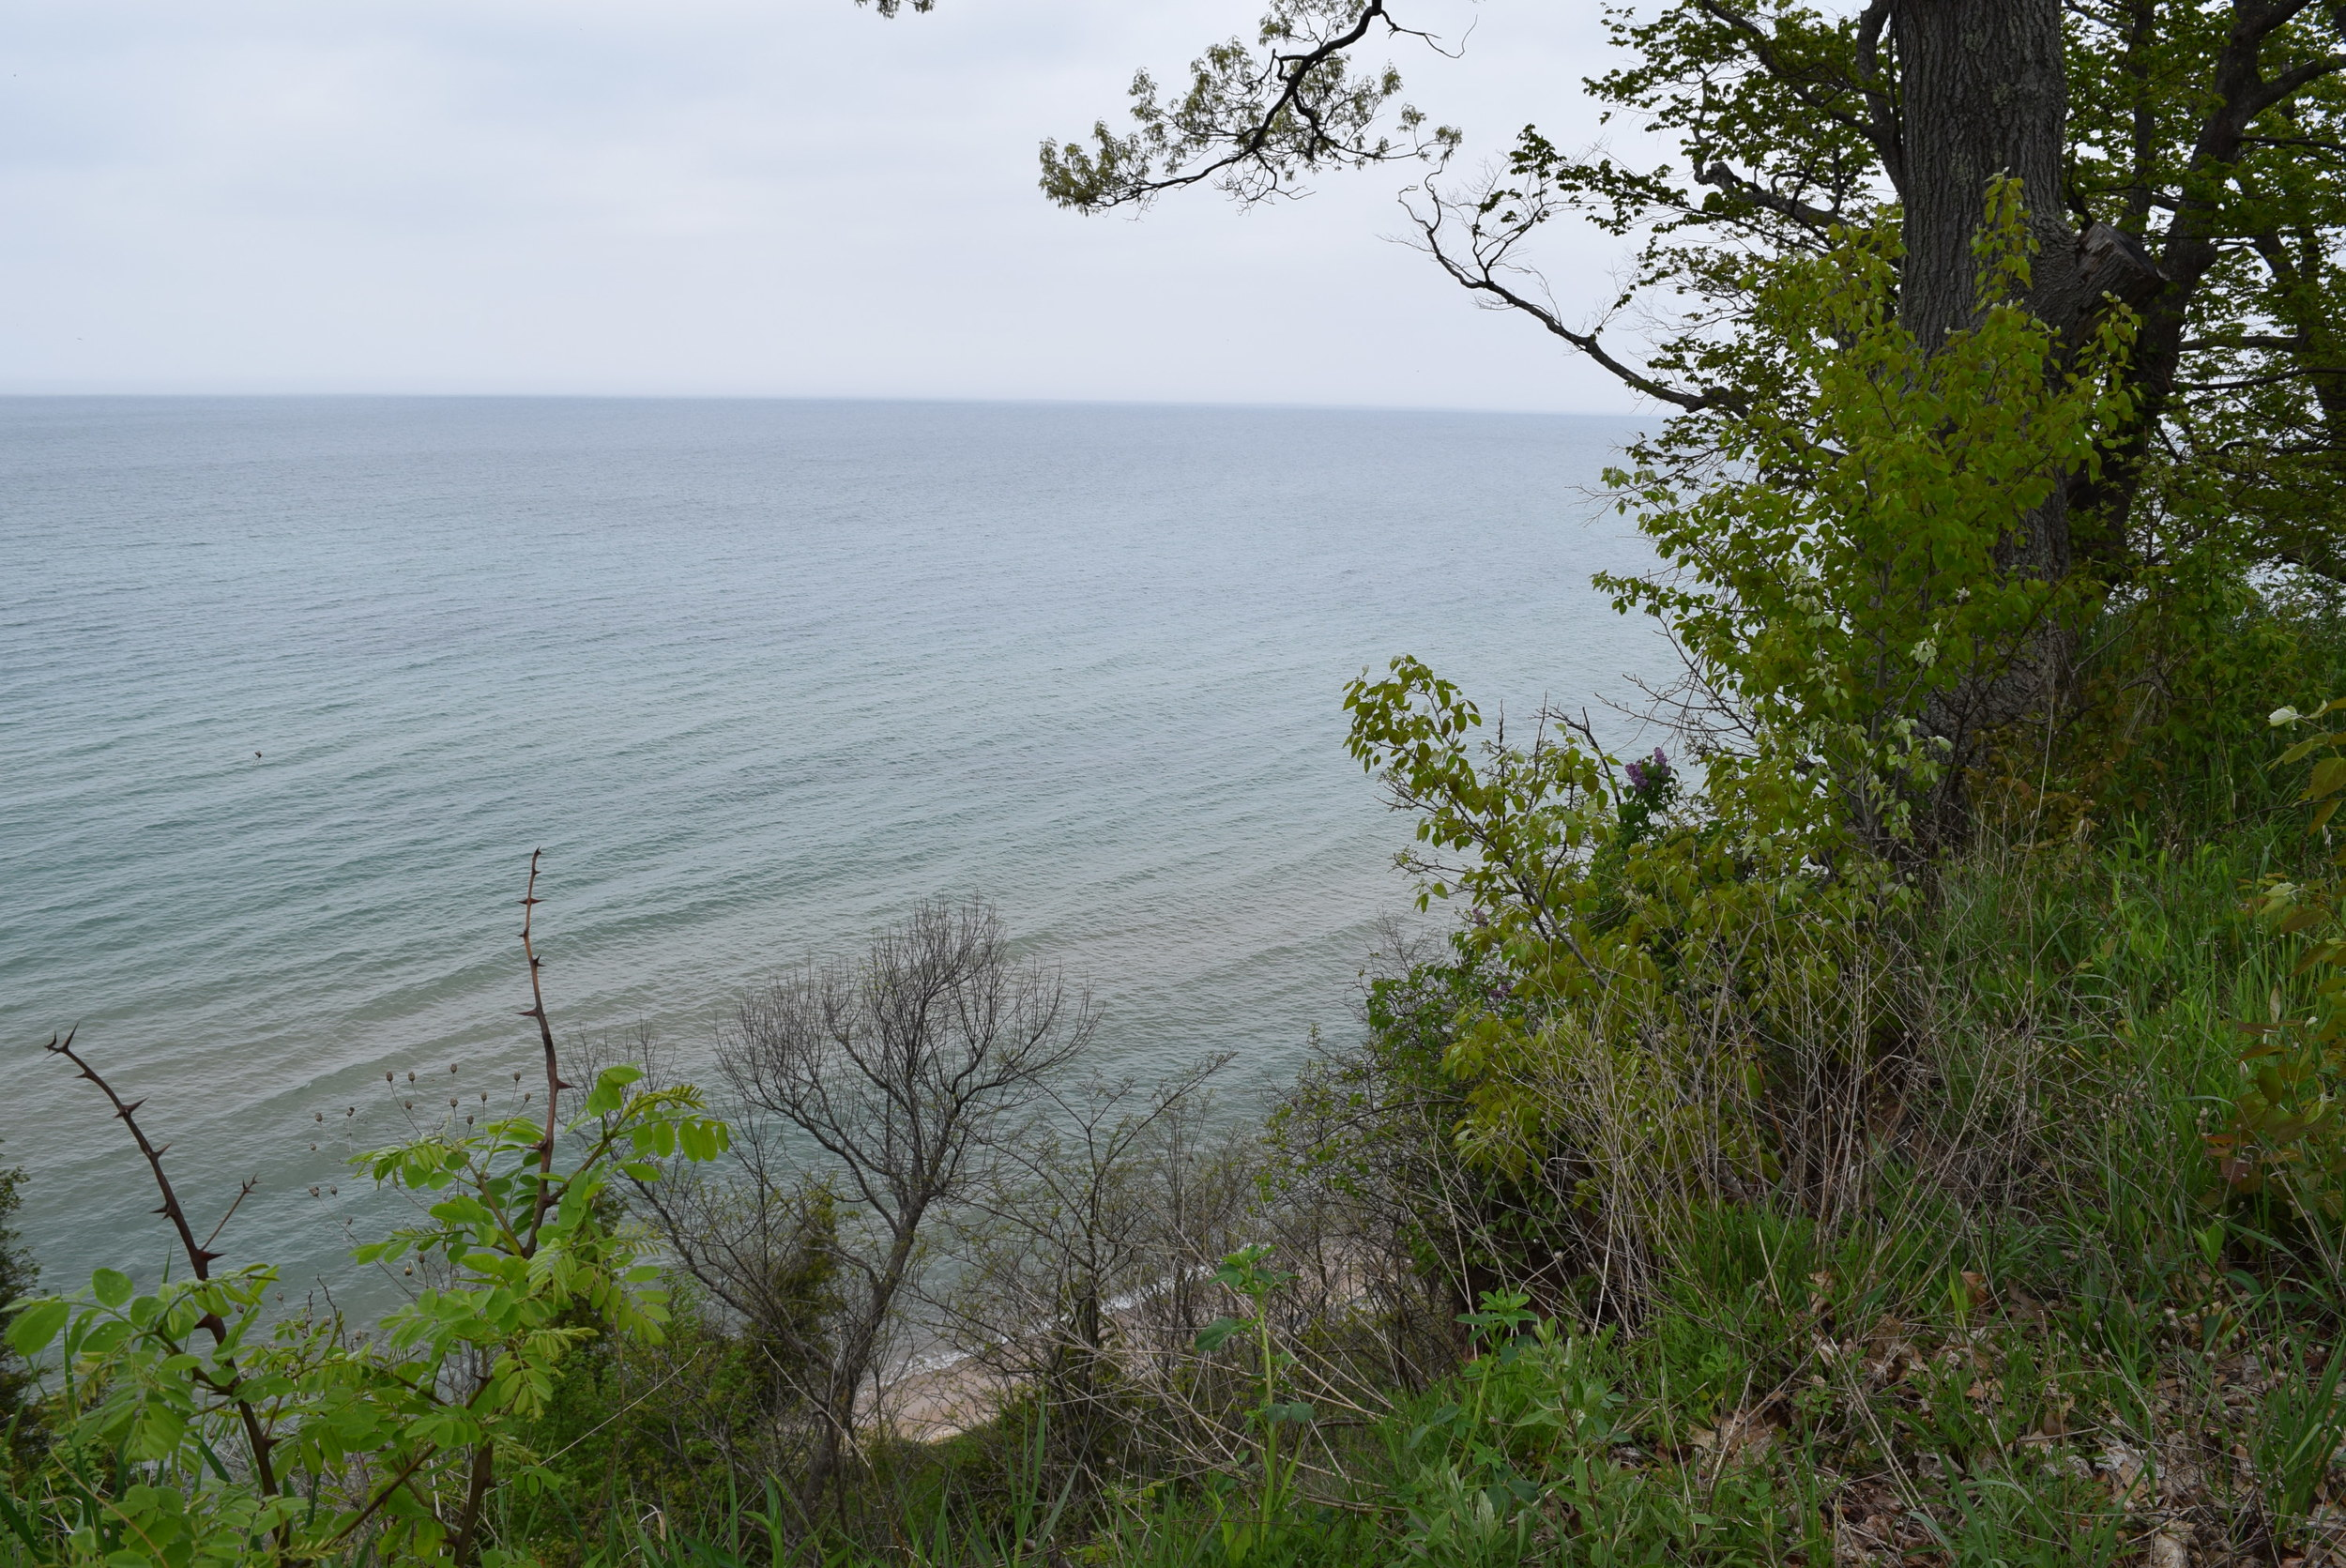 The lake from the bluff, directly behind our site.